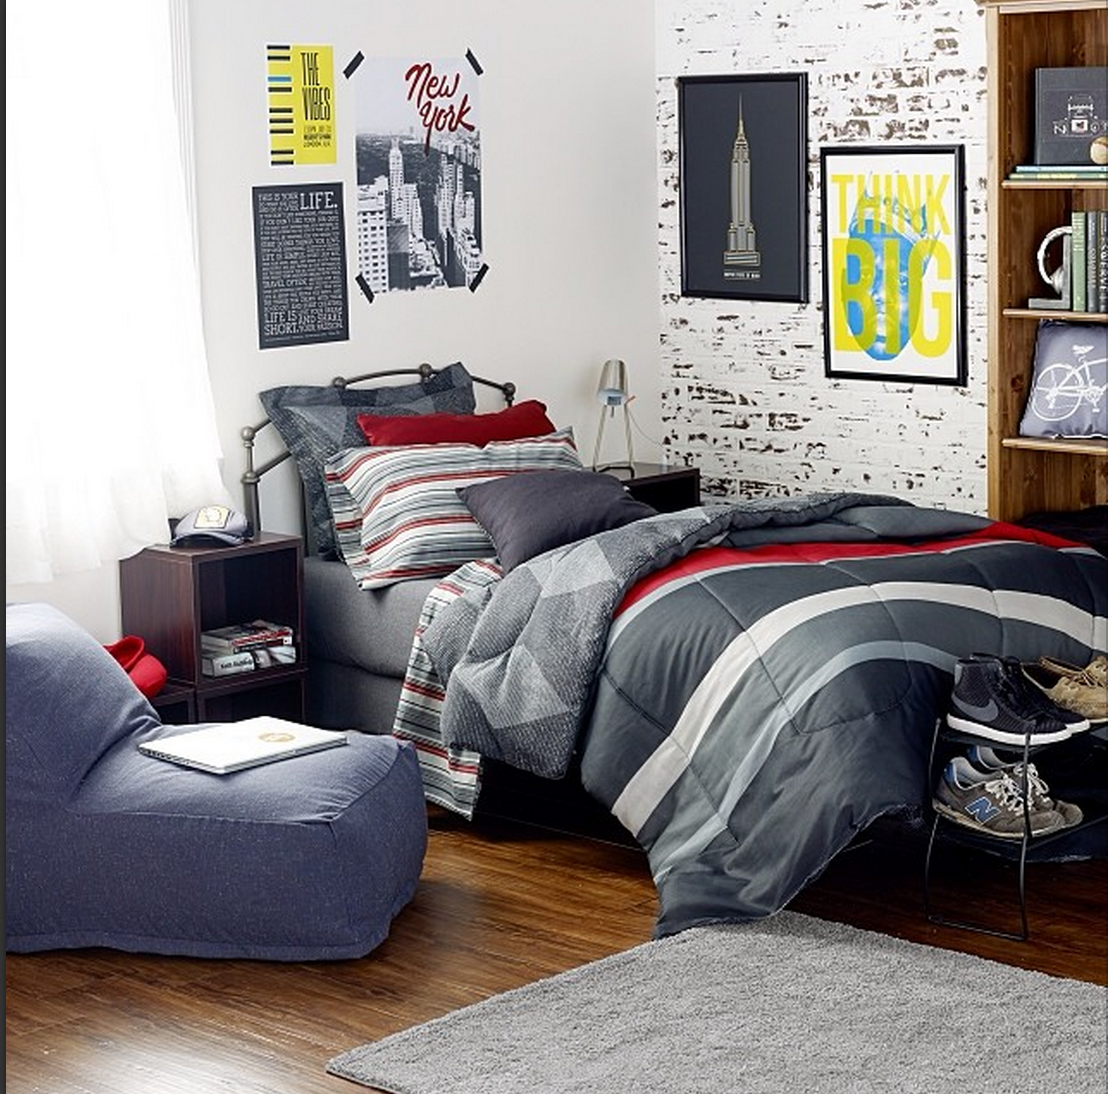 Dormify For Guys Love This Dormified Dorm Room Your Urban Laid Back Guy